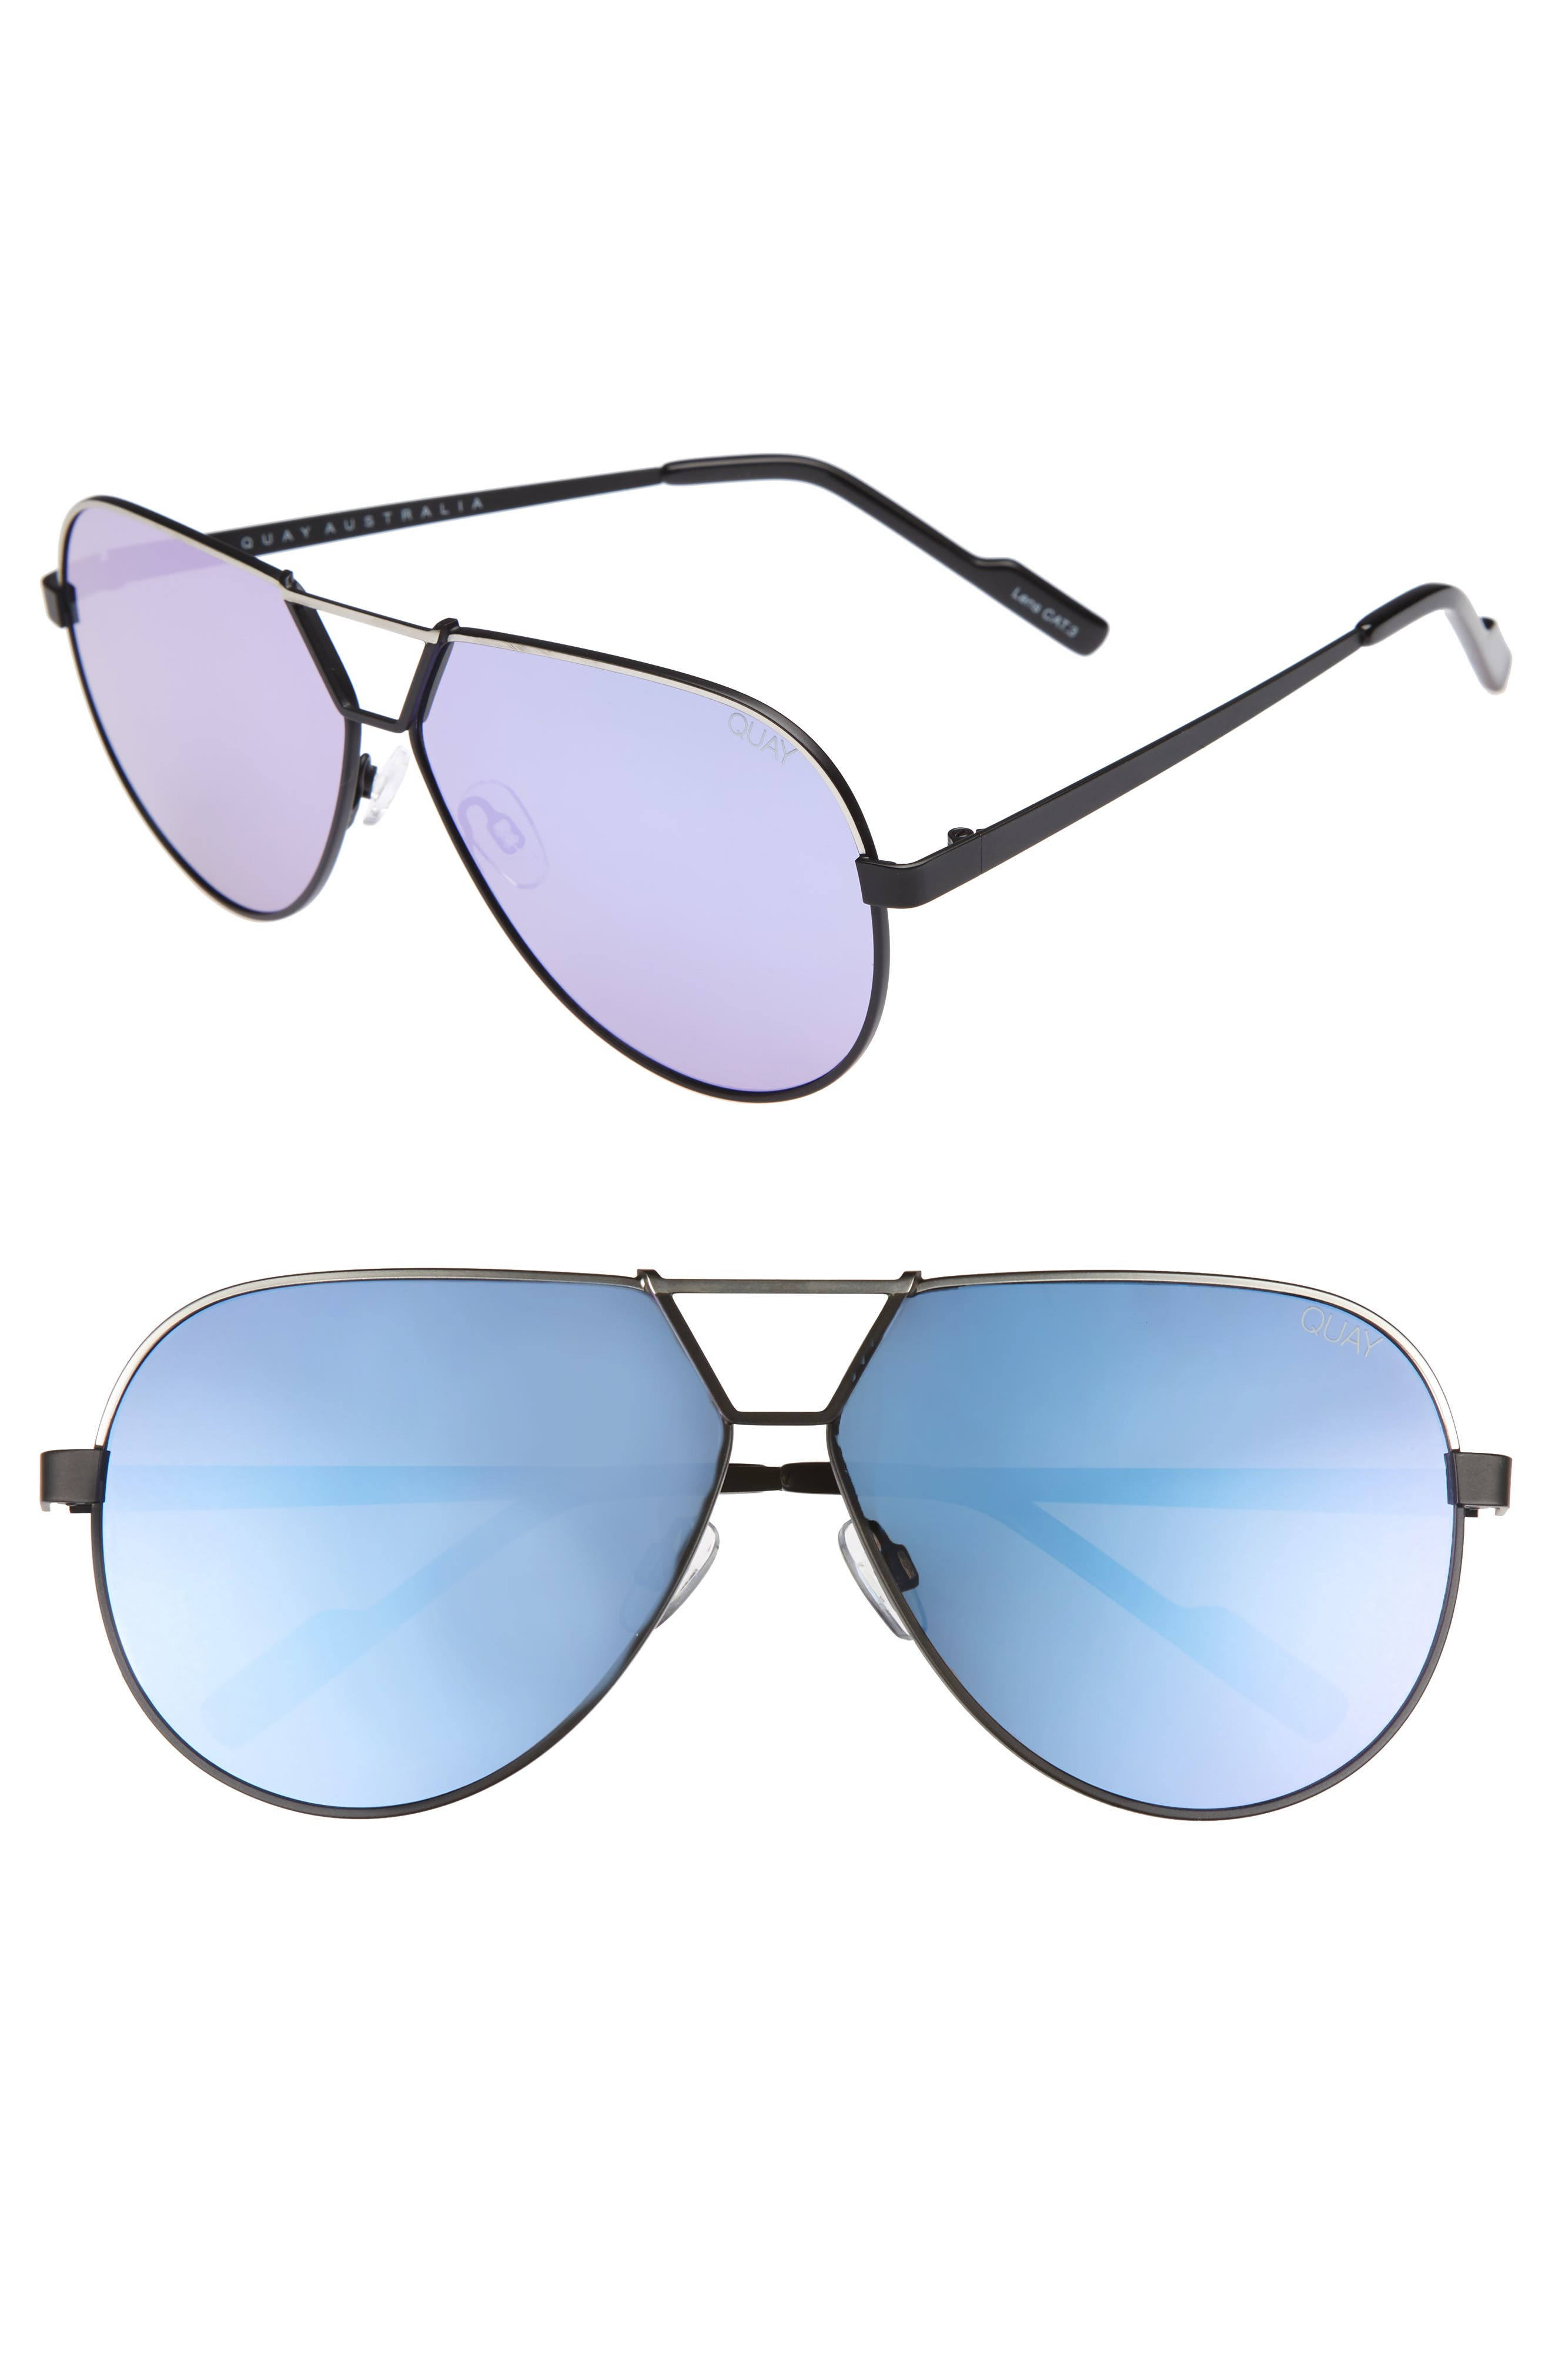 Supernova 63mm Aviator Sunglasses,                             Main thumbnail 1, color,                             001